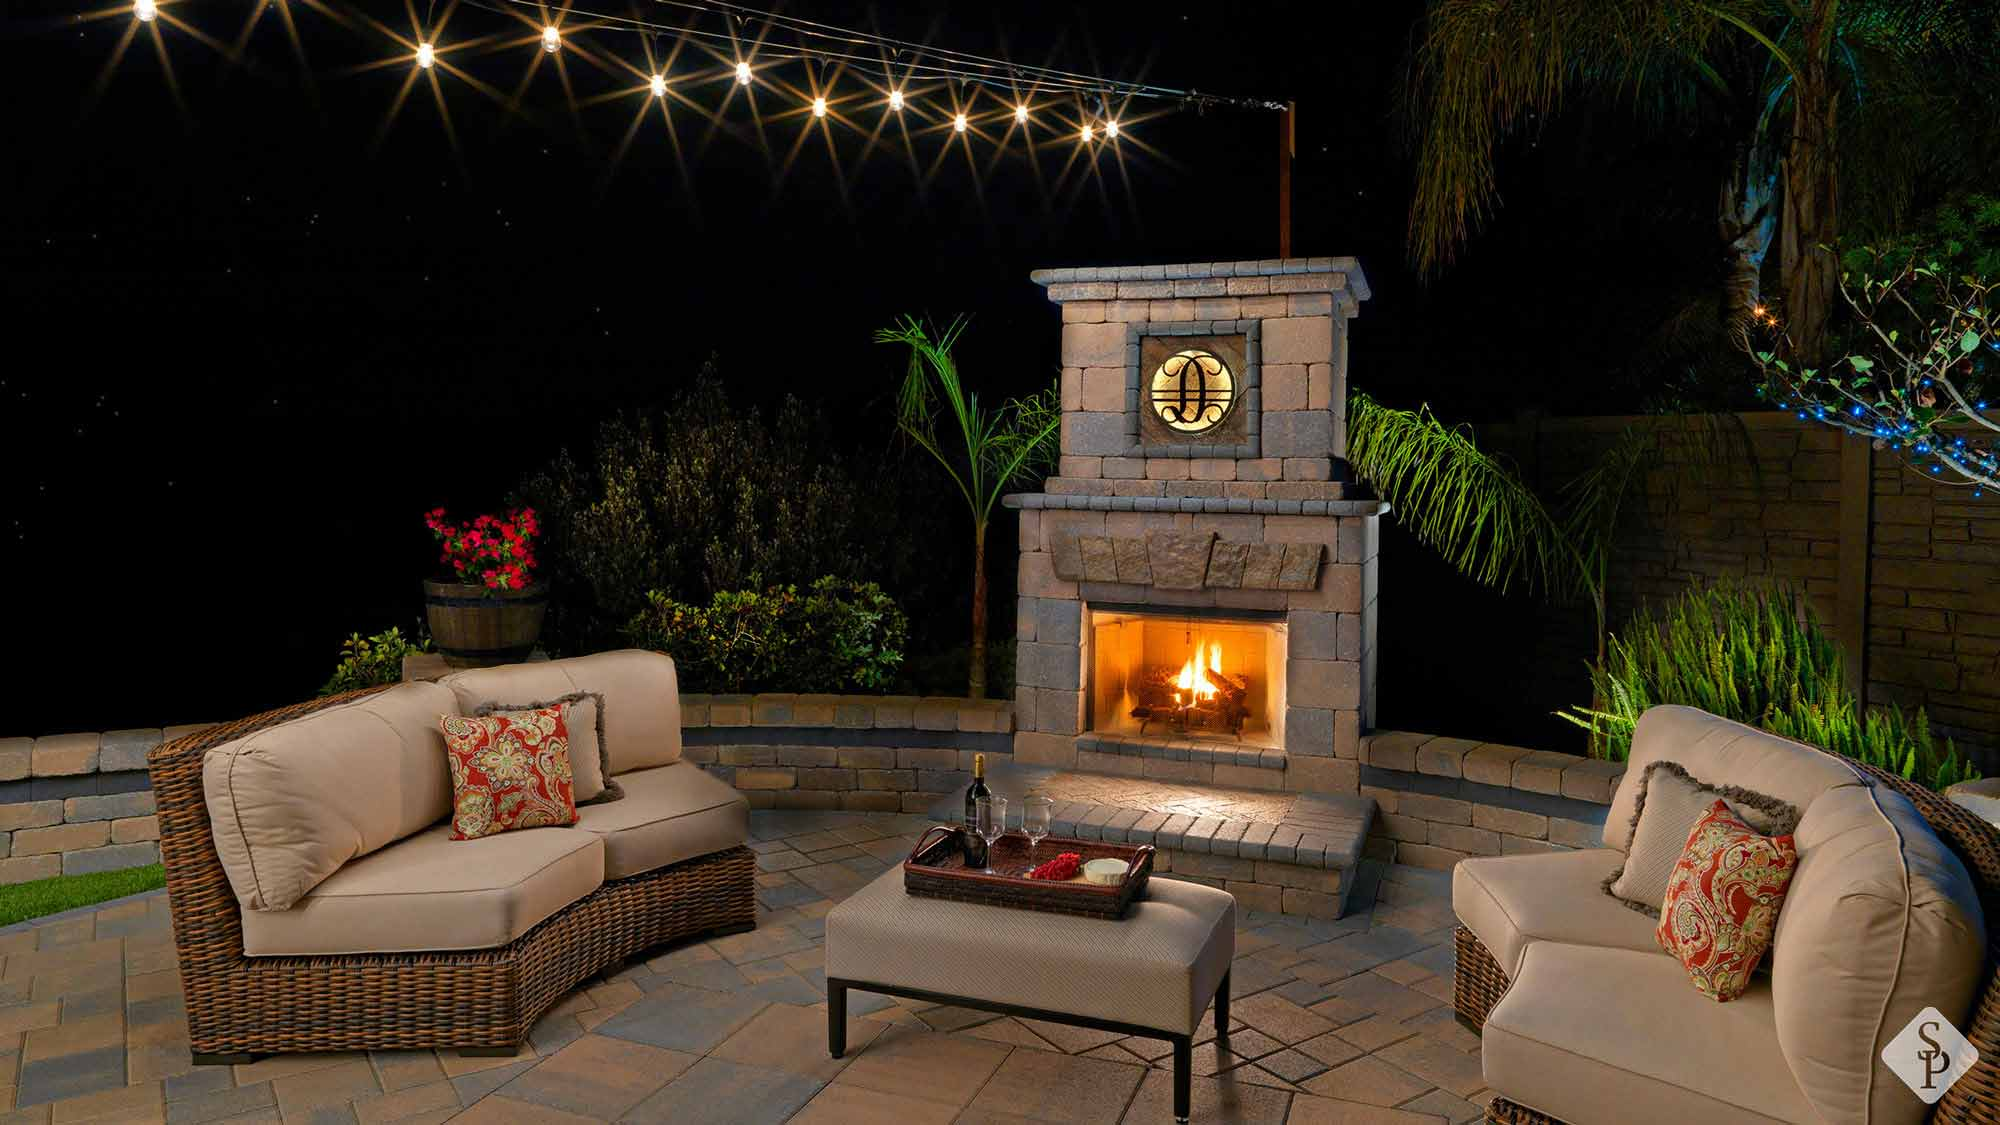 Allow your outdoor living space to shine with the addition of an elegant outdoor fireplace.